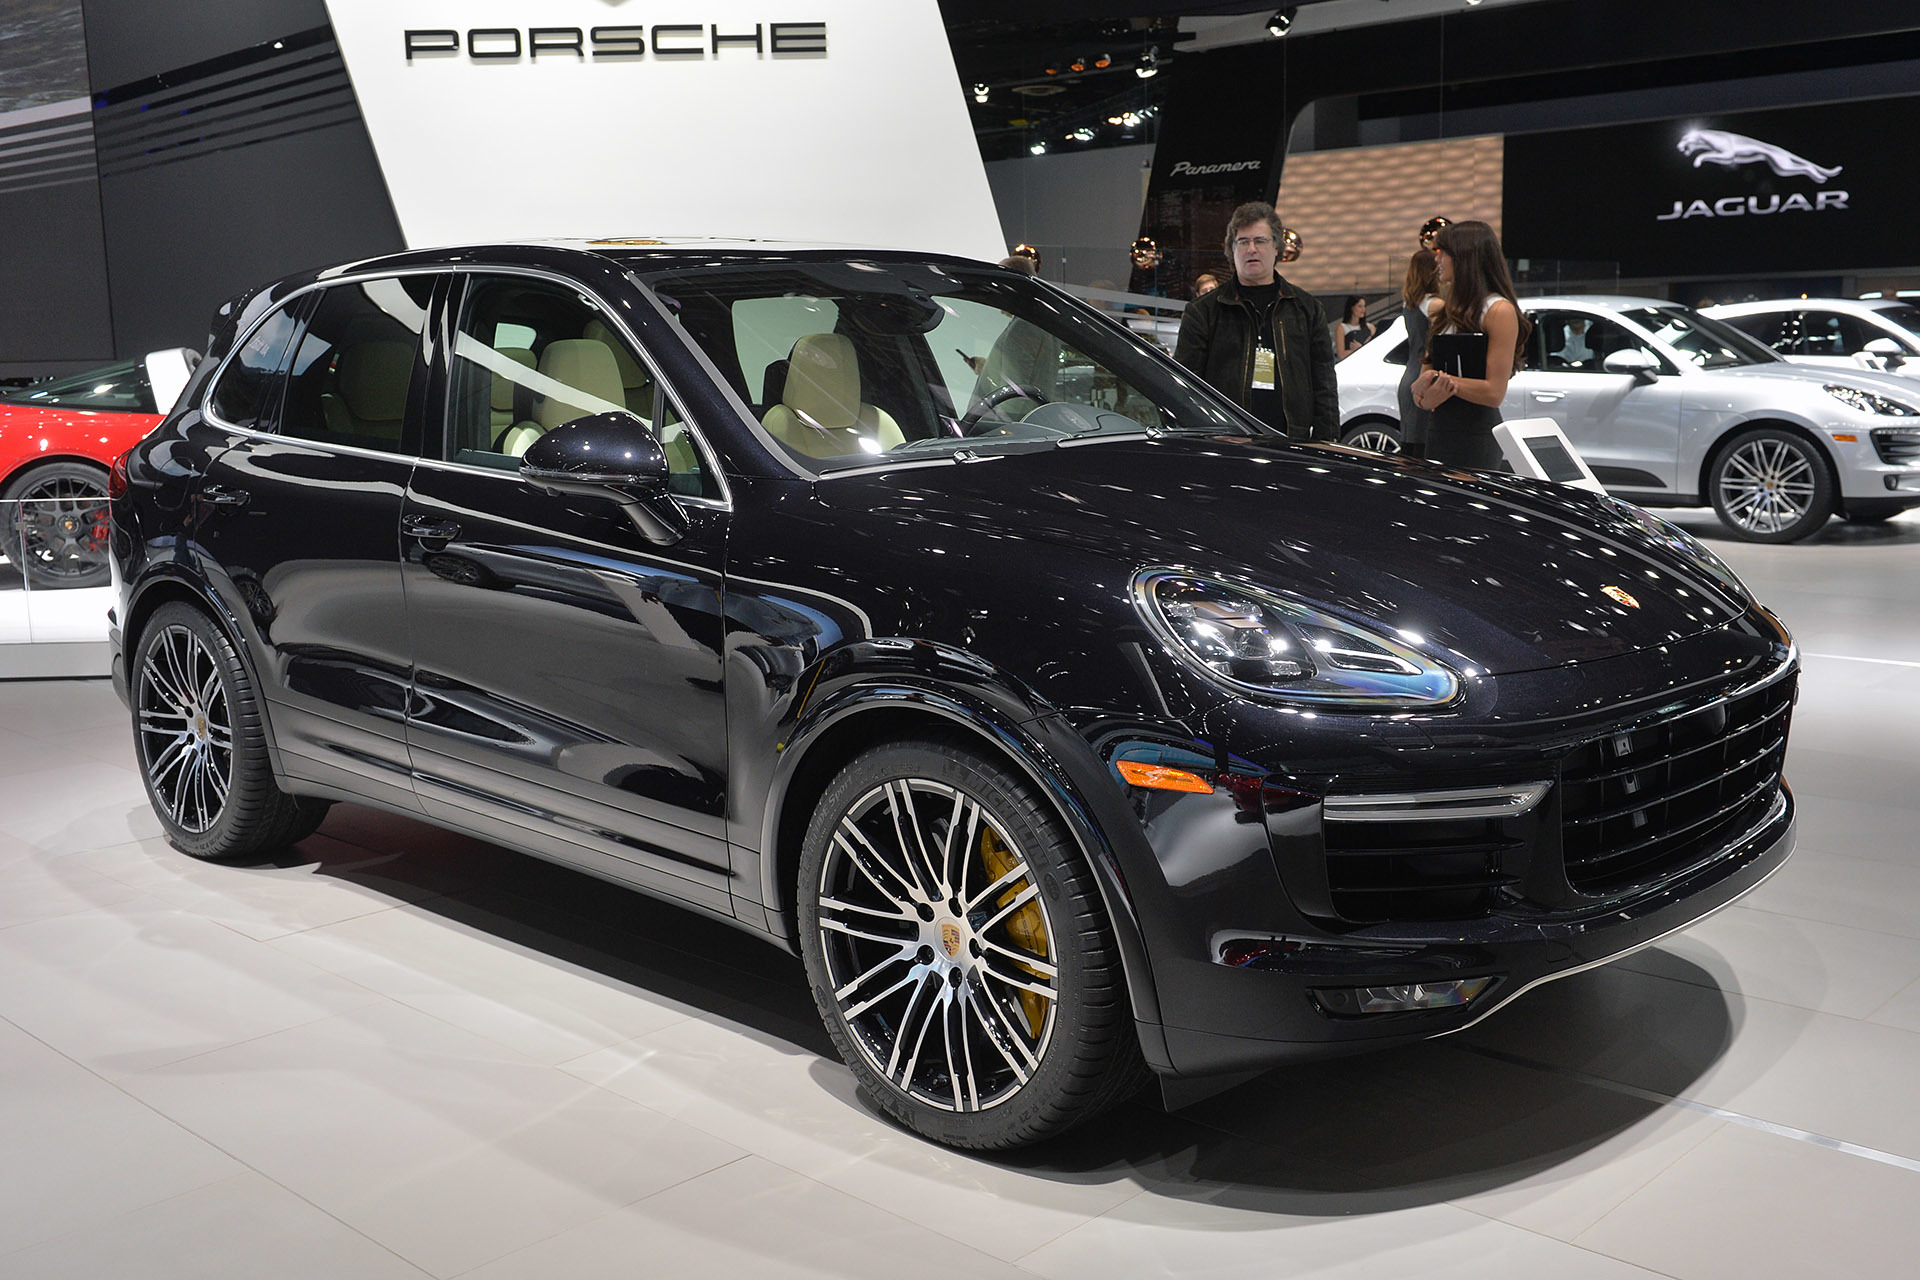 2015 porsche cayenne turbo s detroit 2015 photo gallery autoblog